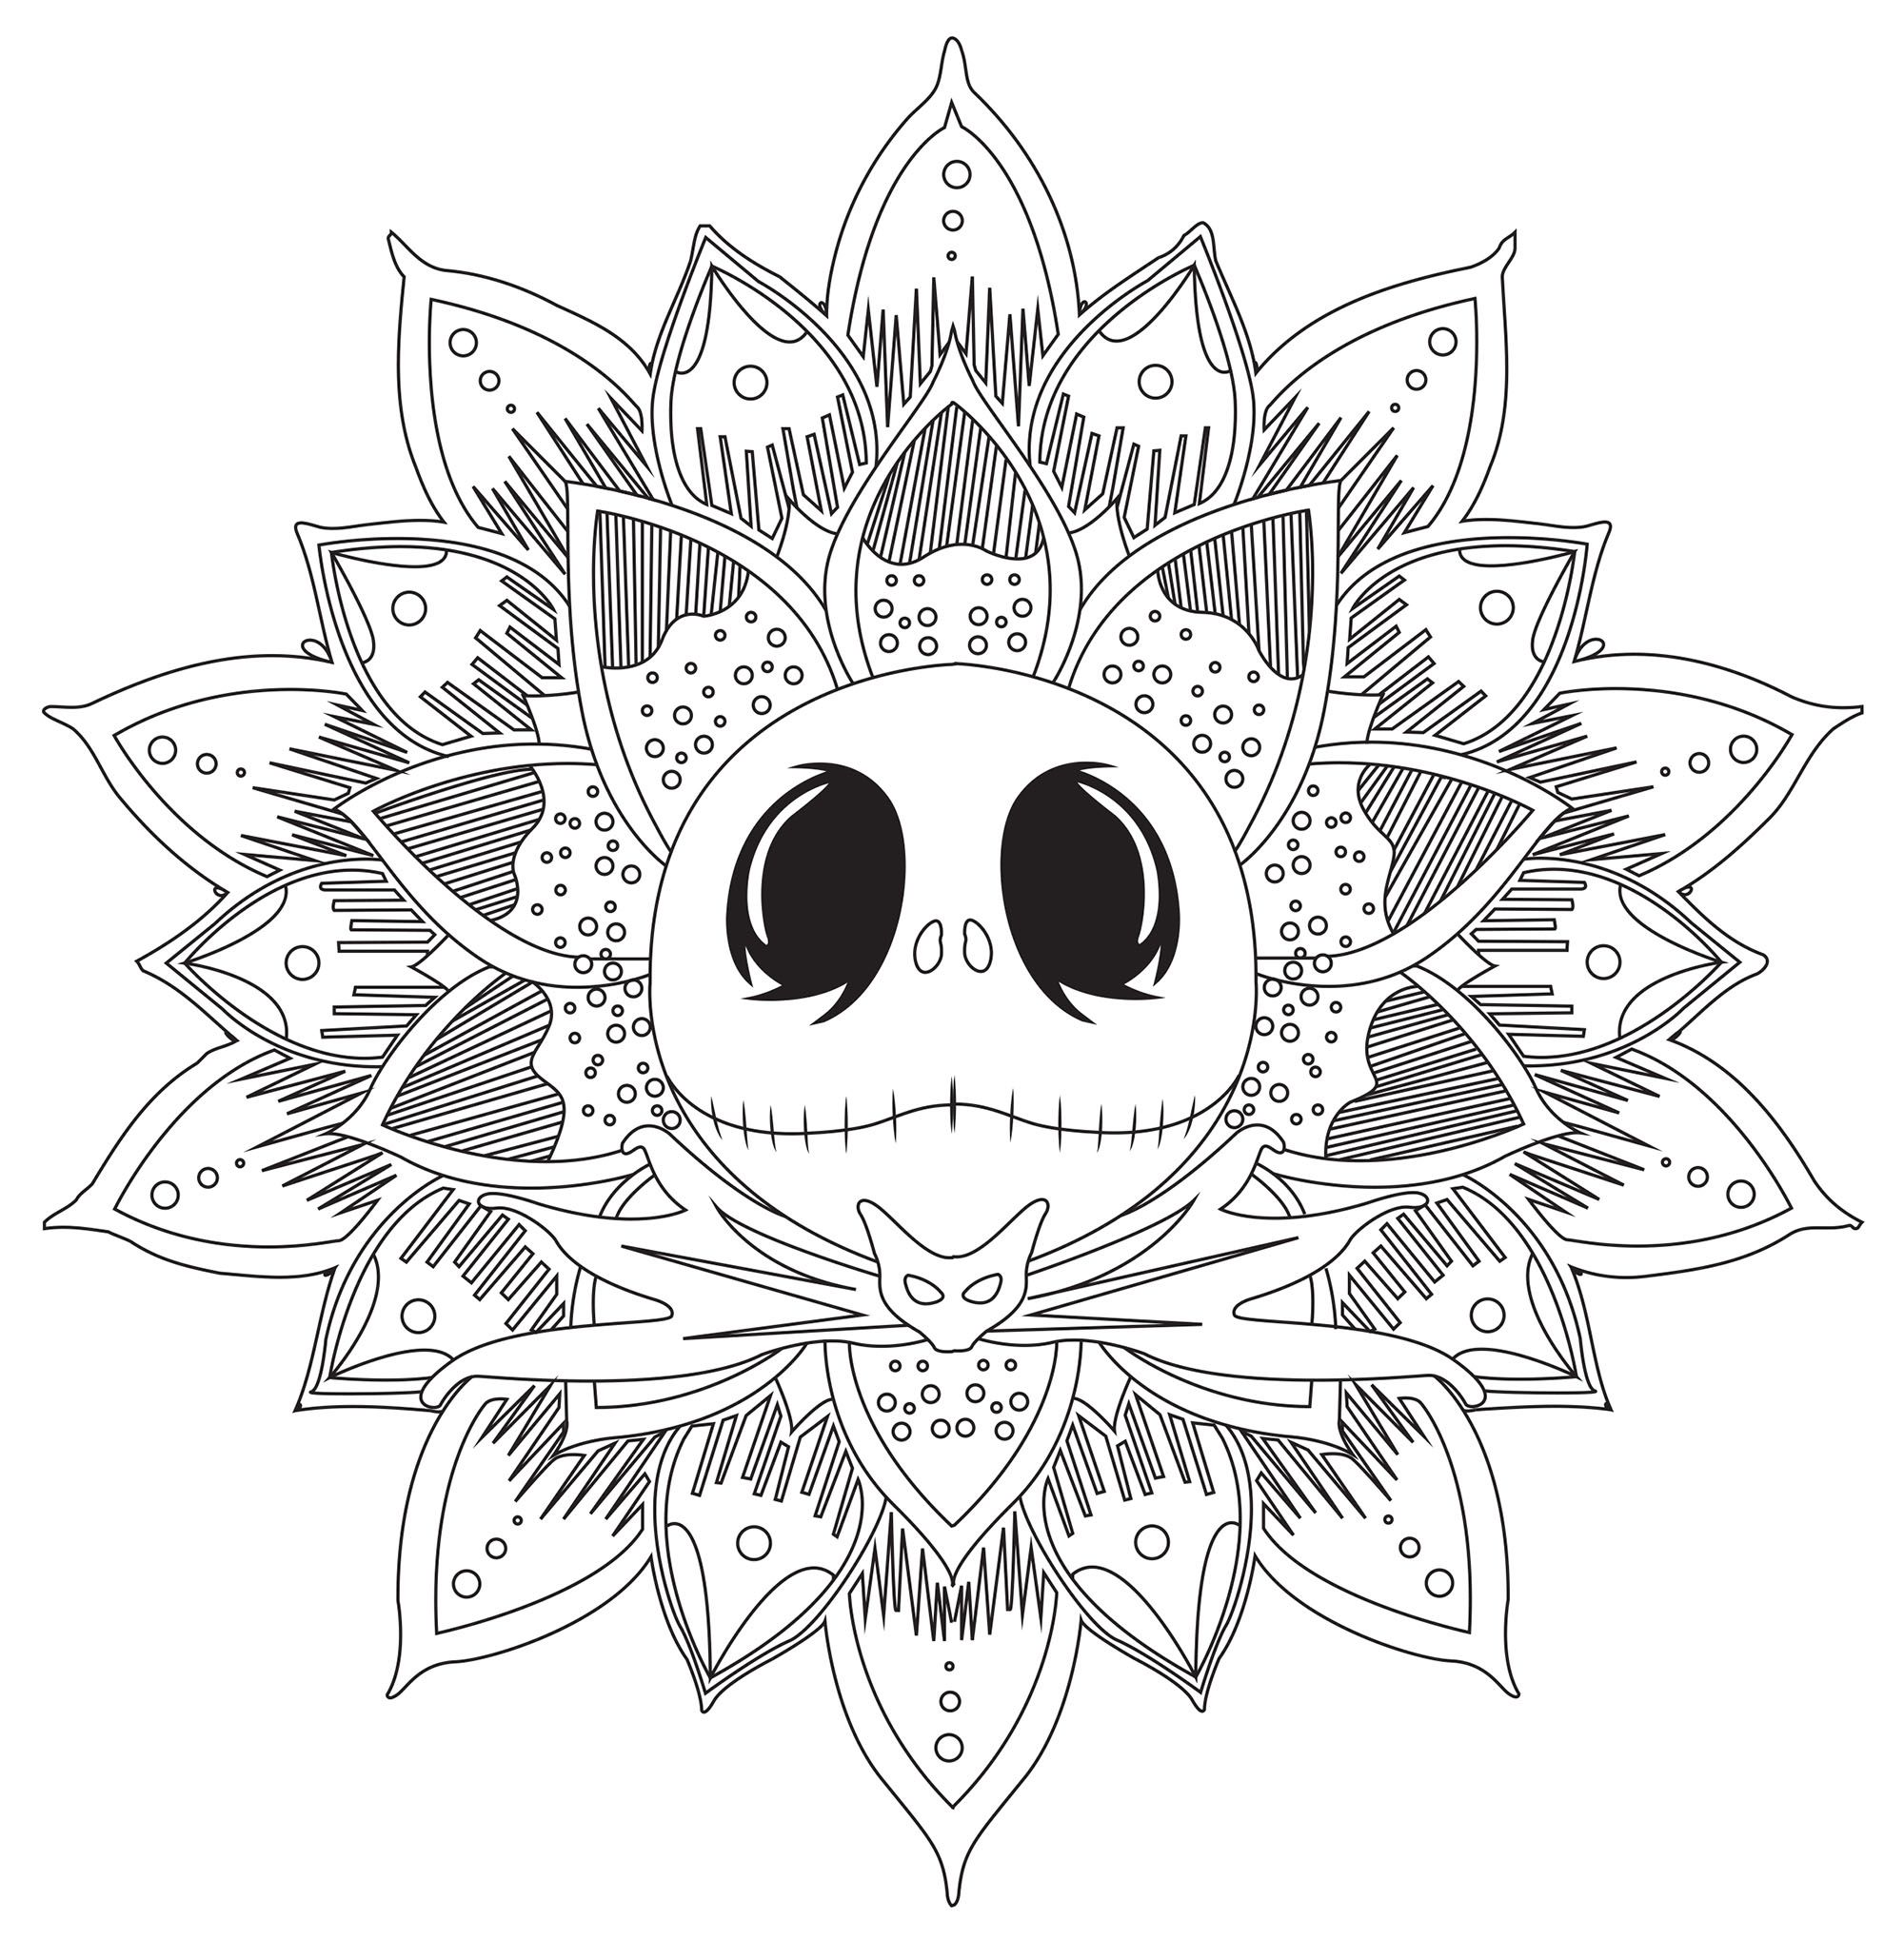 A Mandala Inspired By The Nightmare Before Christmas And His Main In 2020 Mandala Coloring Pages Nightmare Before Christmas Tattoo Nightmare Before Christmas Drawings